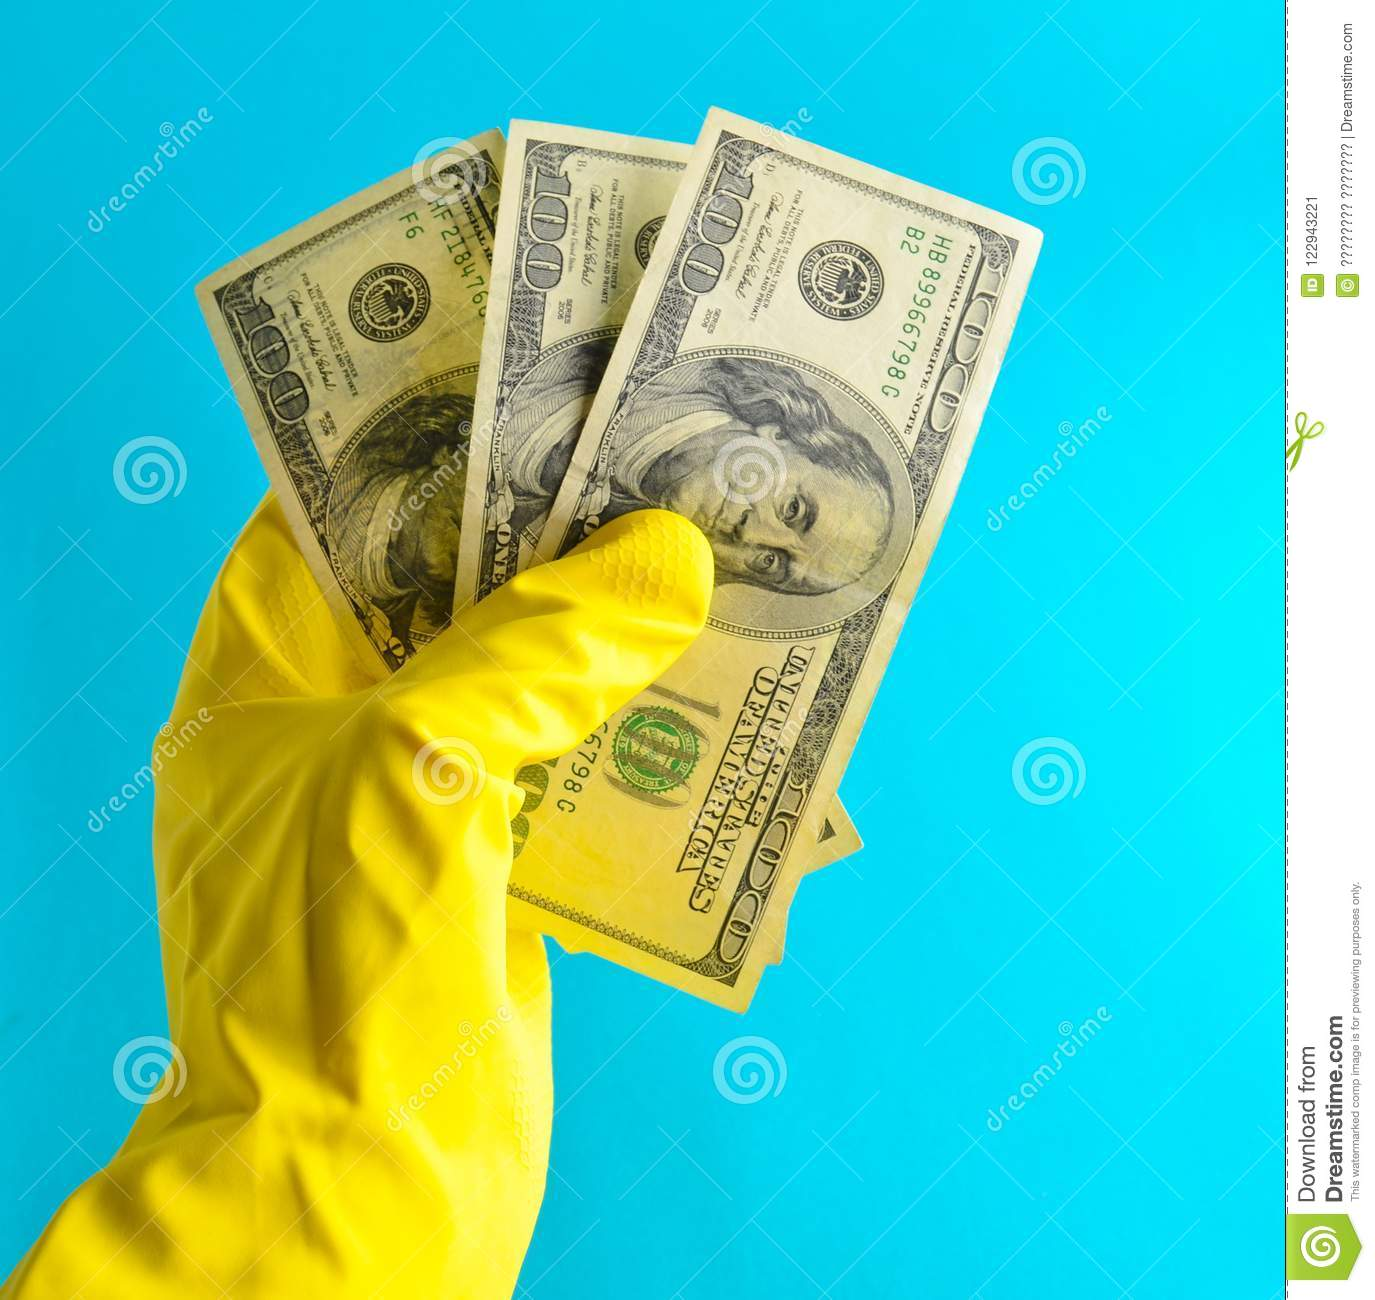 men x27s hands with yellow rubber gloves for cleaning